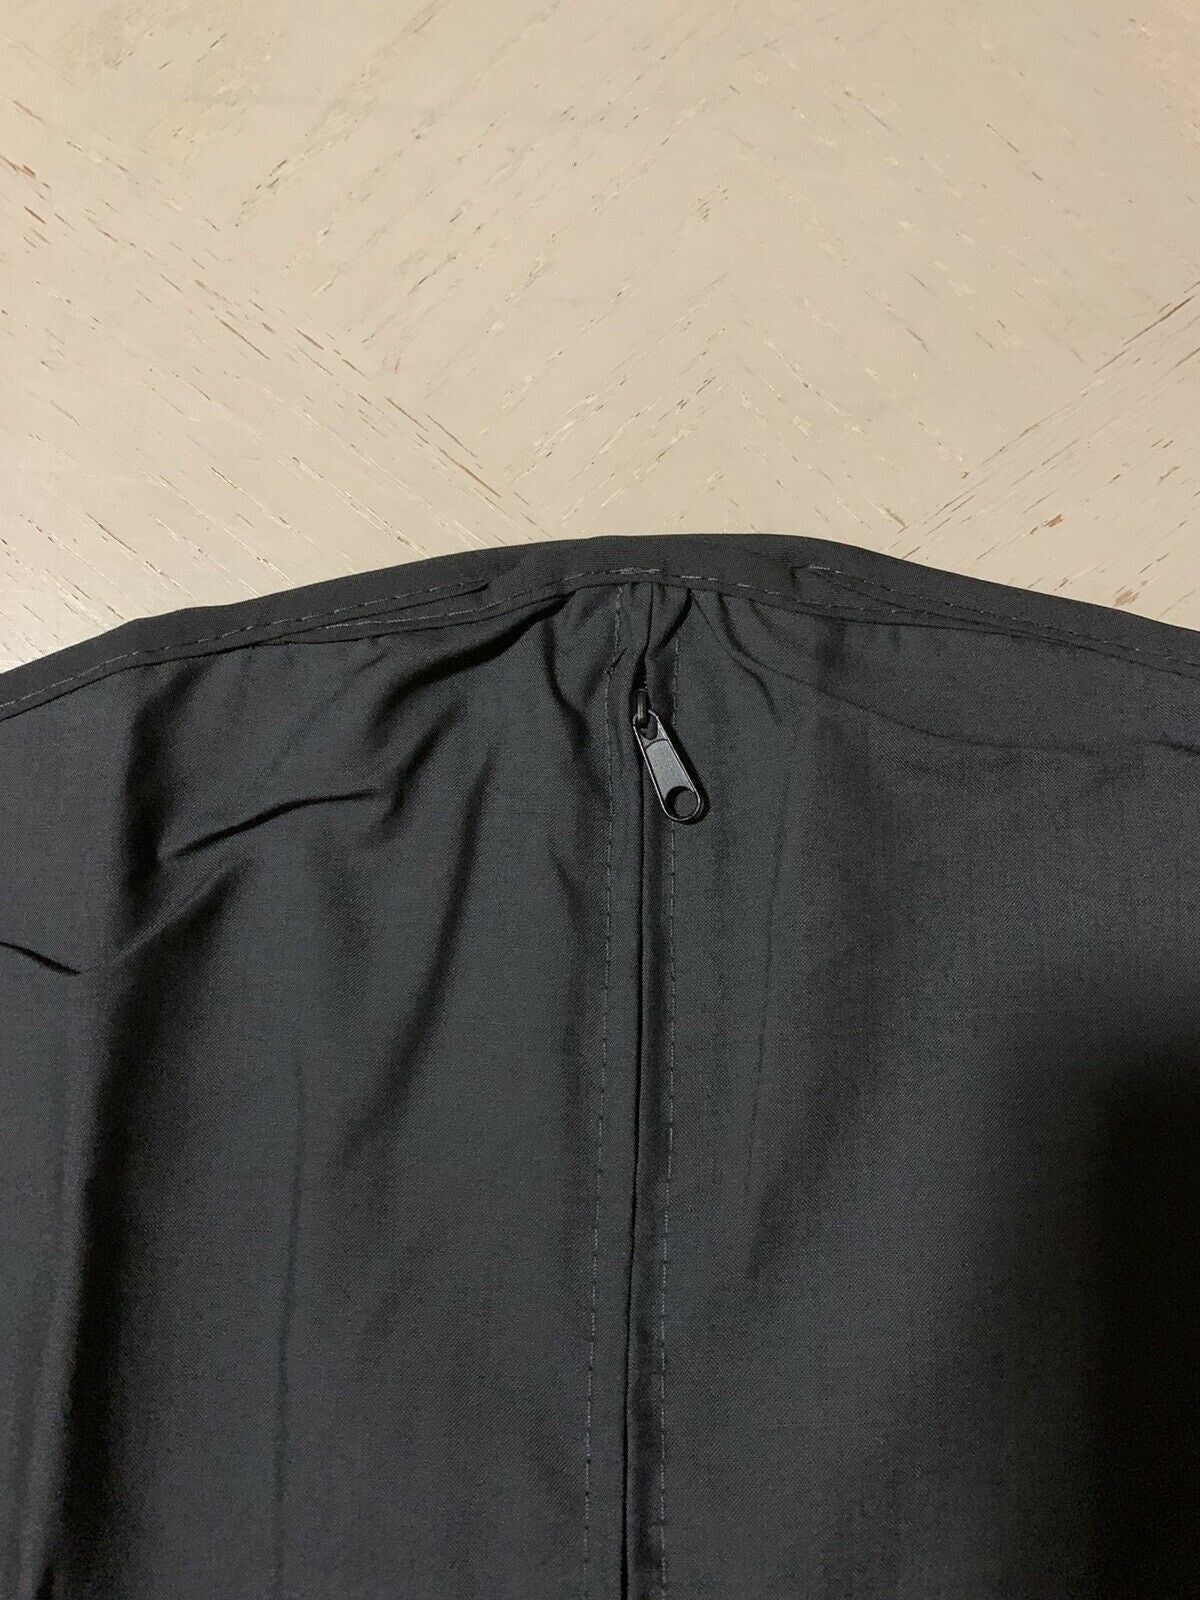 Brand New Ermenegildo Zegna Garment (Suit) Dark Brown Bag